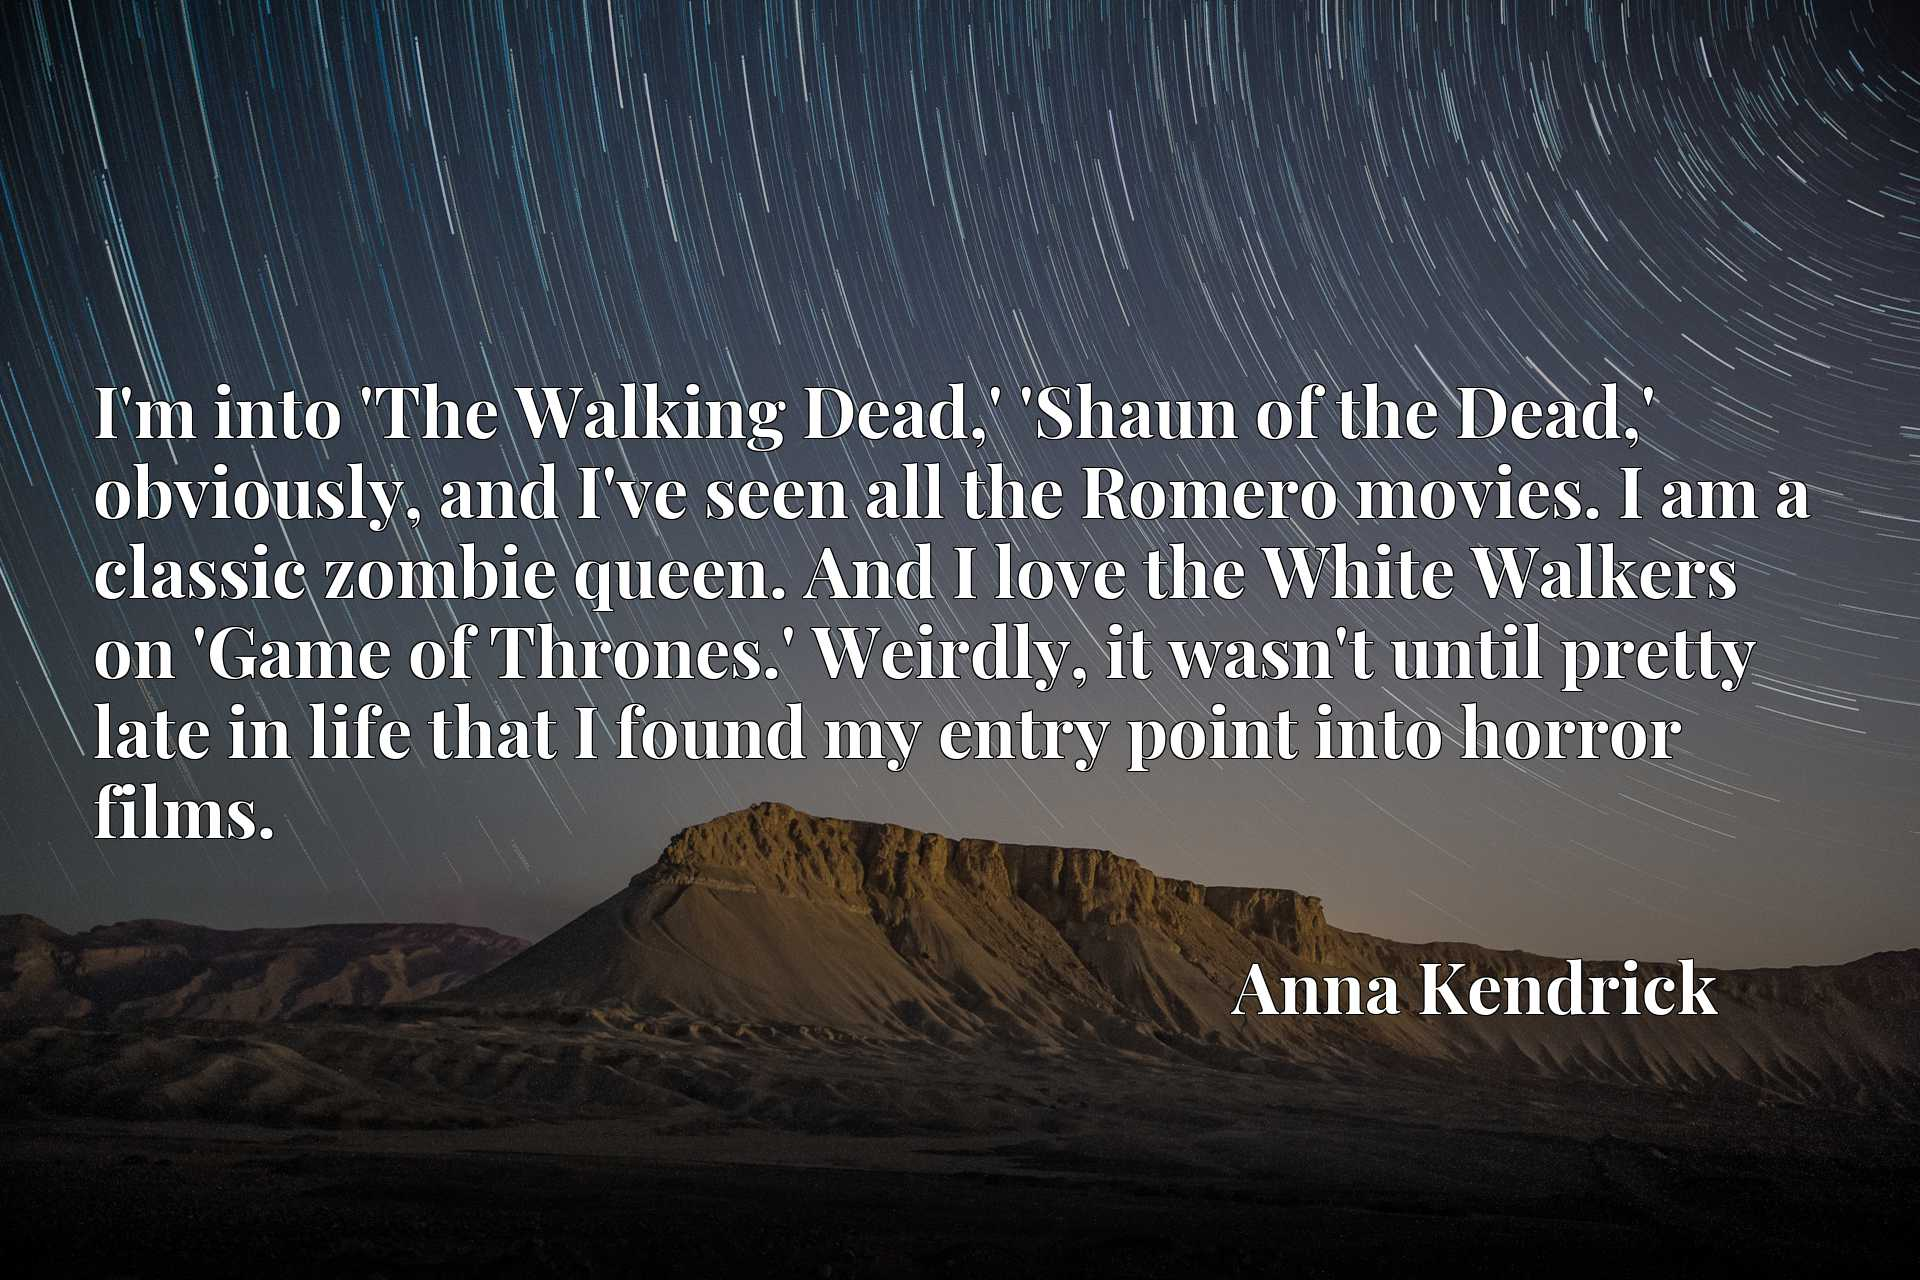 I'm into 'The Walking Dead,' 'Shaun of the Dead,' obviously, and I've seen all the Romero movies. I am a classic zombie queen. And I love the White Walkers on 'Game of Thrones.' Weirdly, it wasn't until pretty late in life that I found my entry point into horror films.